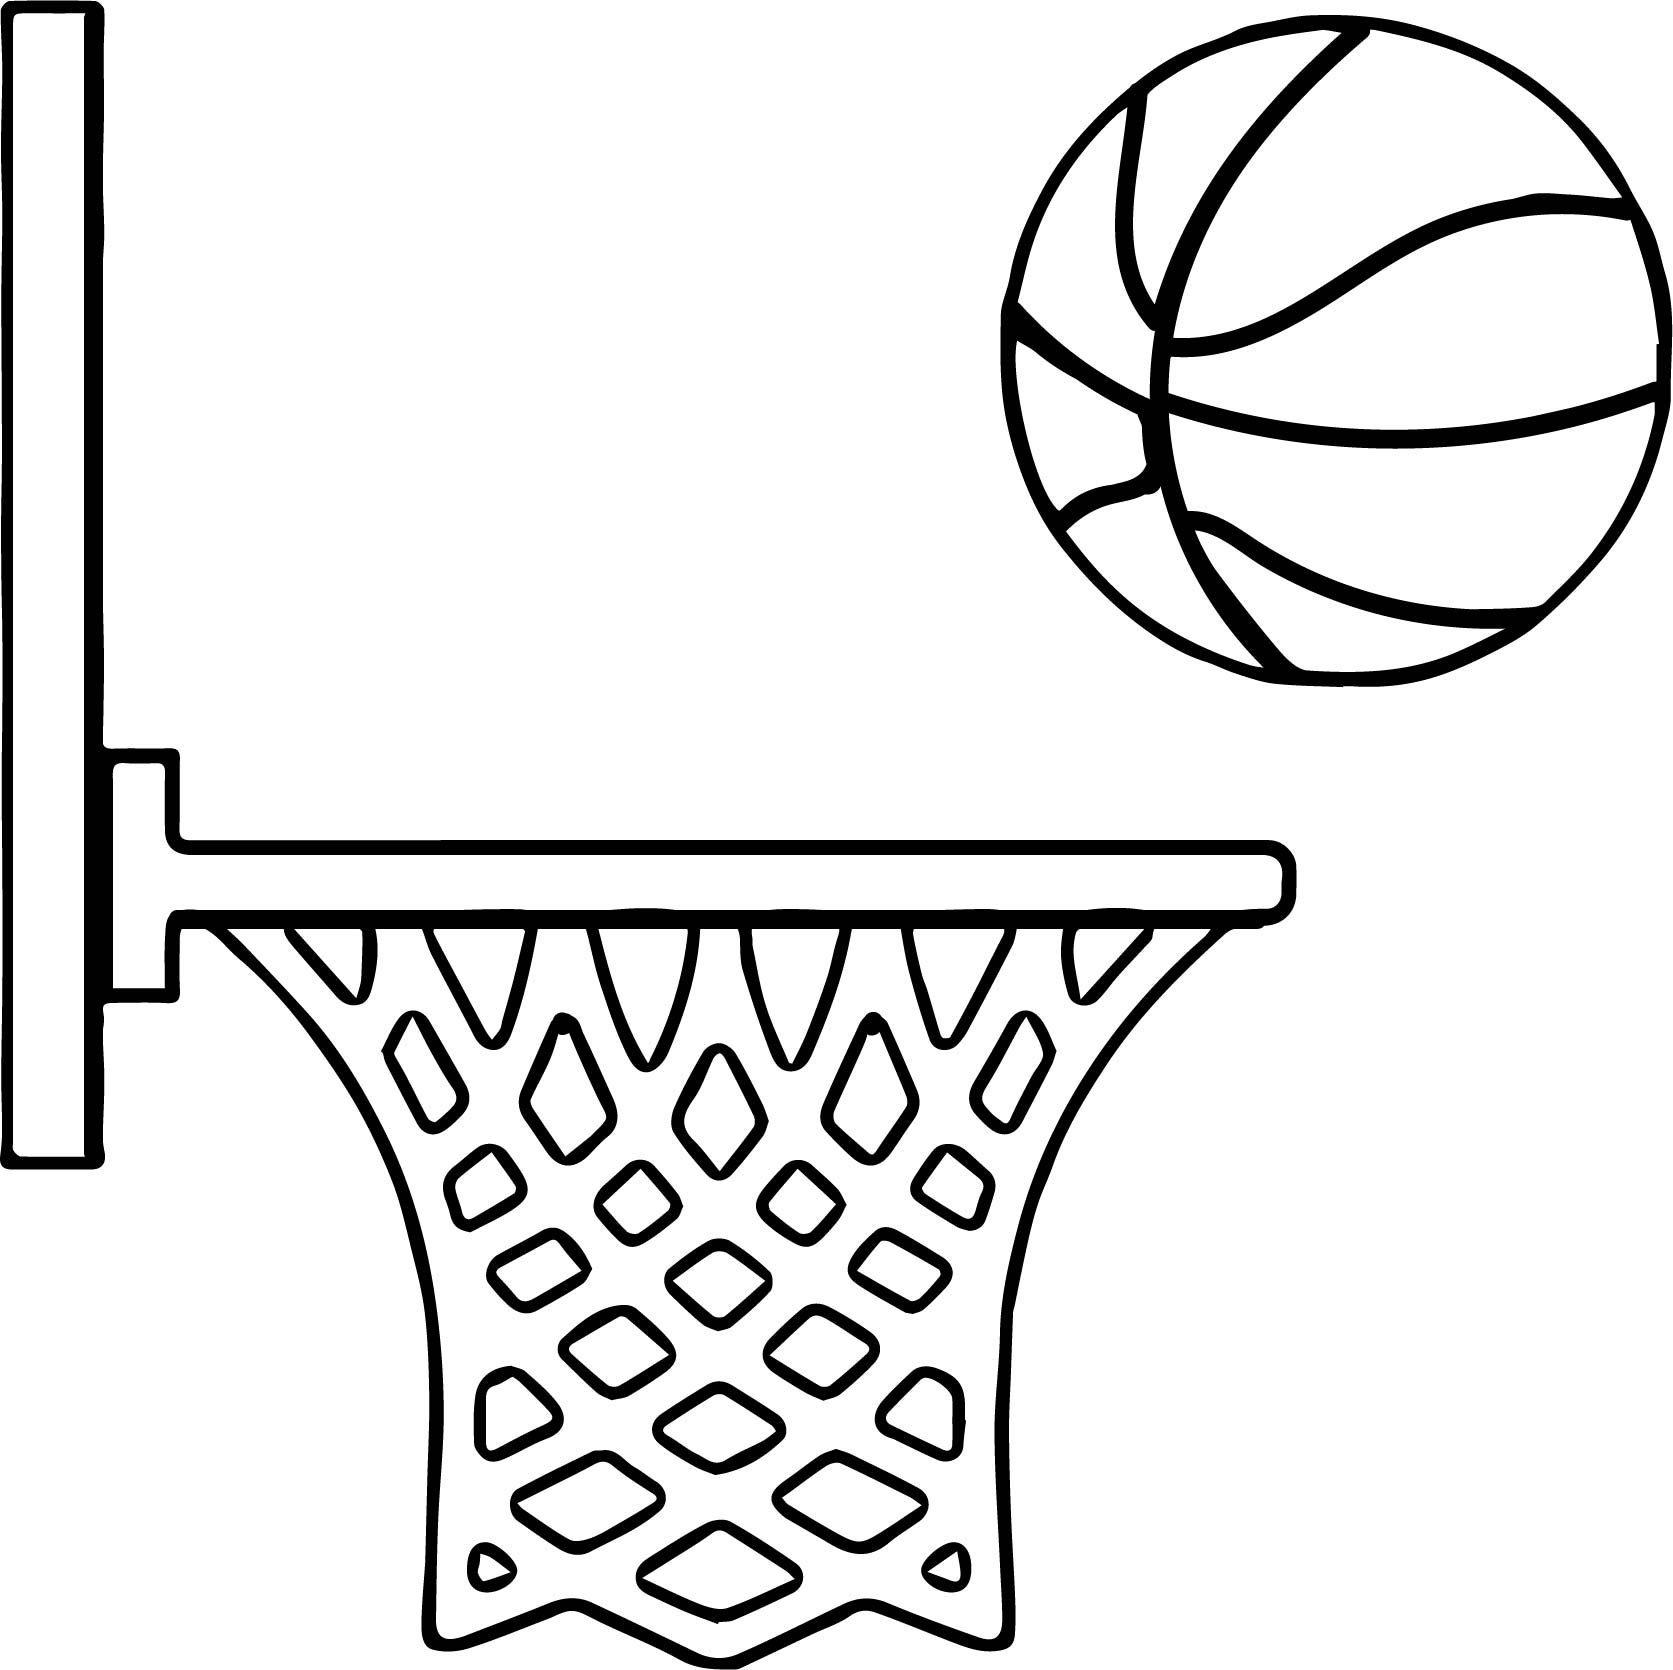 Side Playing Basketball Coloring Page Wecoloringpage